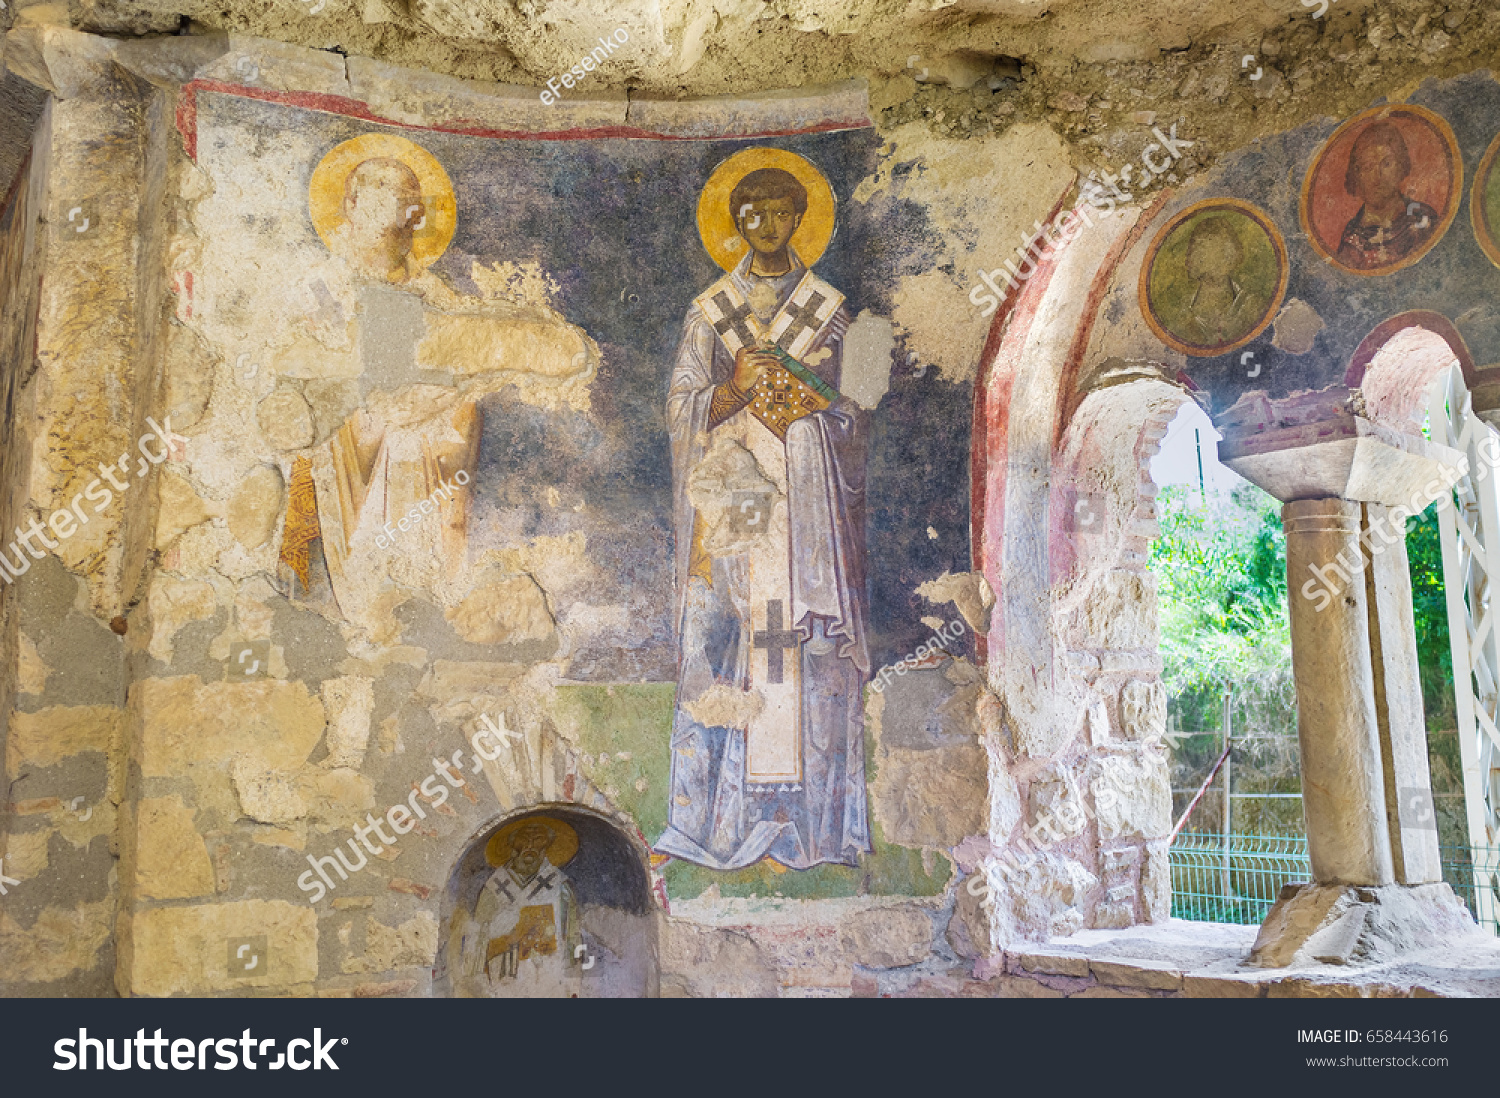 Demre turkey may 7 2017 st stock photo 658443616 shutterstock demre turkey may 7 2017 st nicholas church boasts beautiful preserved medieval amipublicfo Image collections